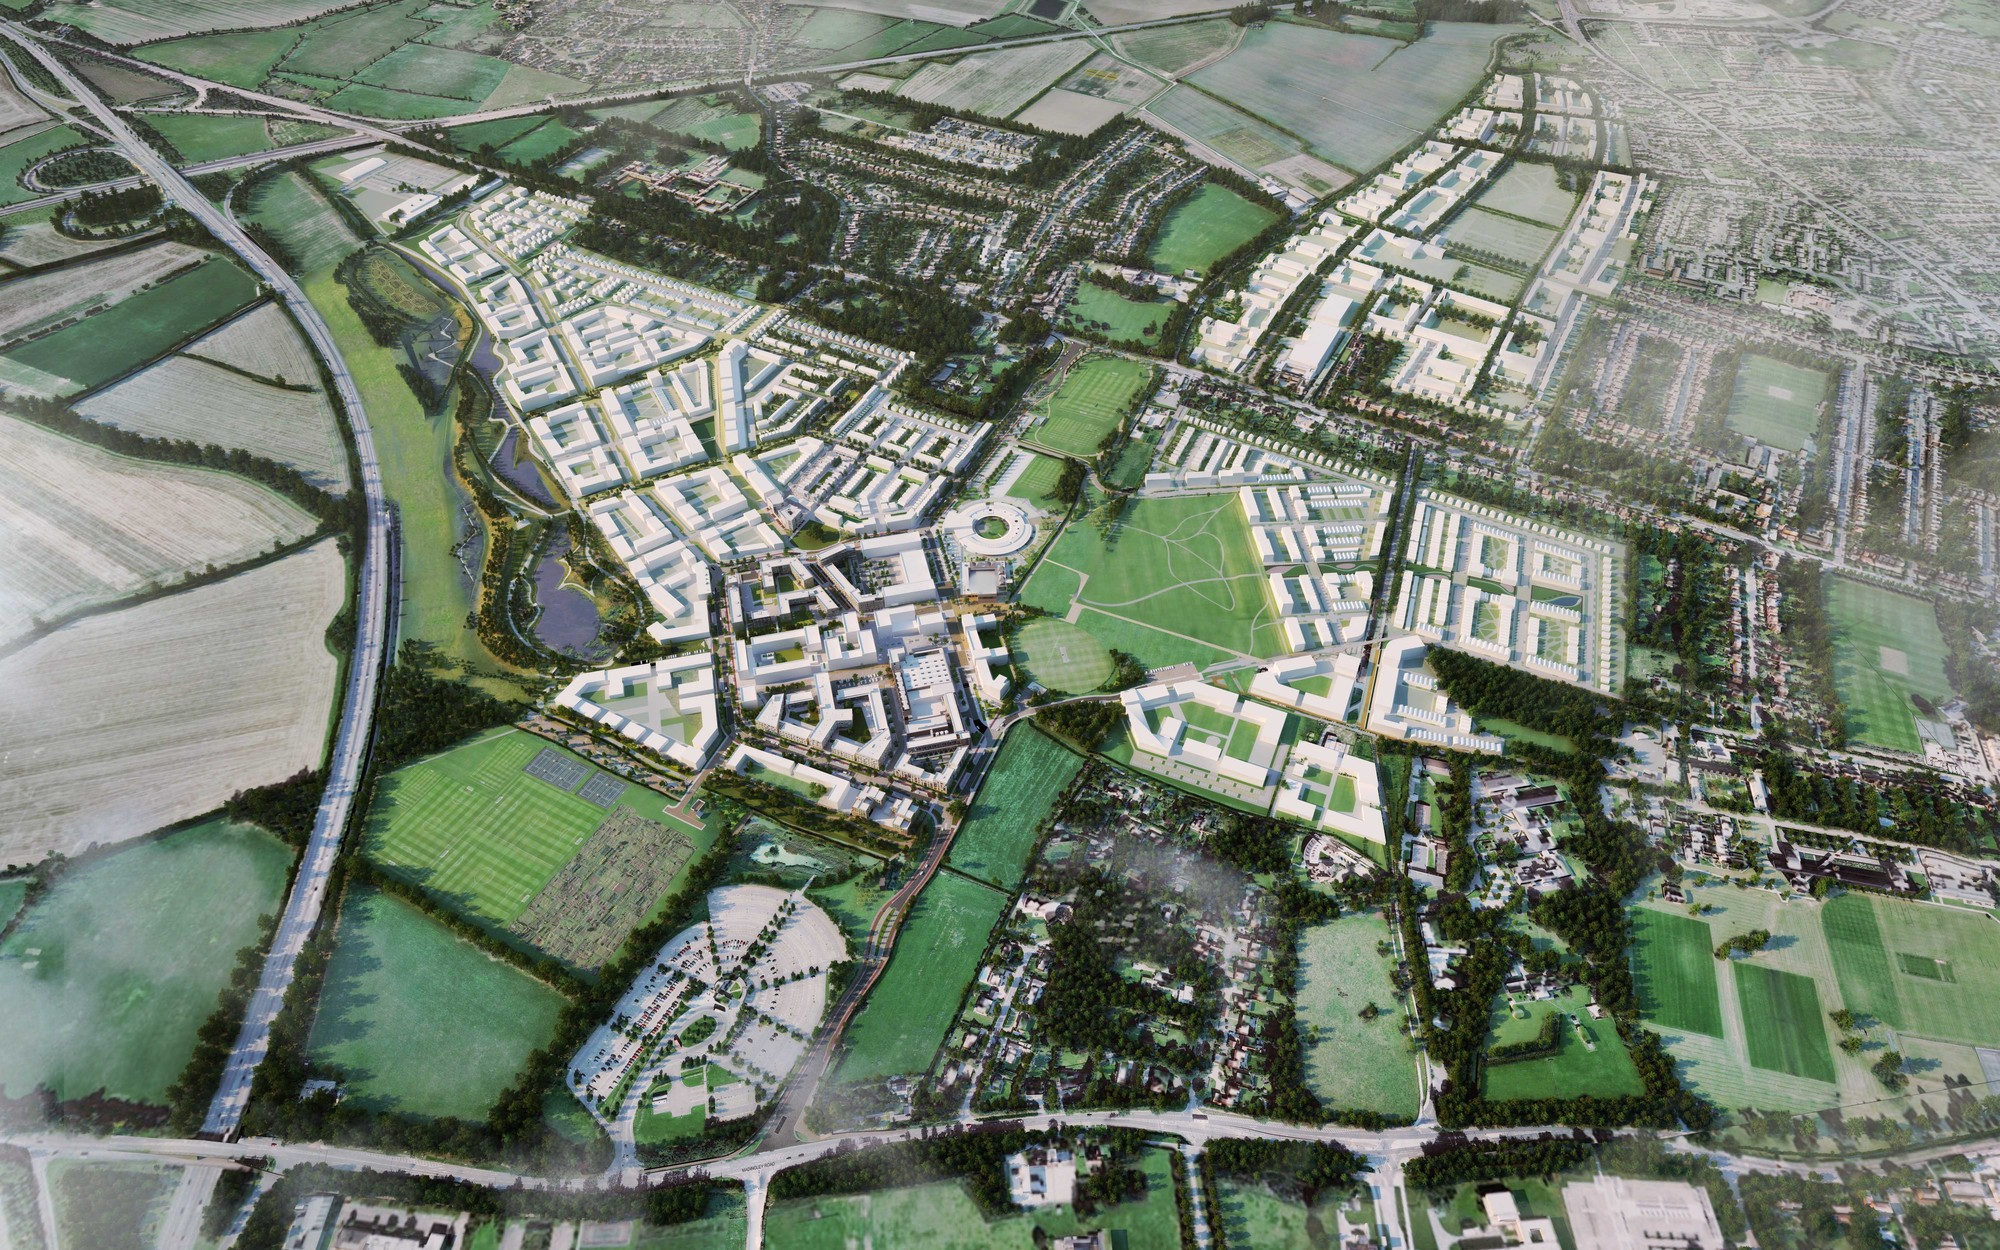 North West Cambridge Extension Proposals Enter Planning Phase, Masterplan. Image Courtesy of North West Cambridge